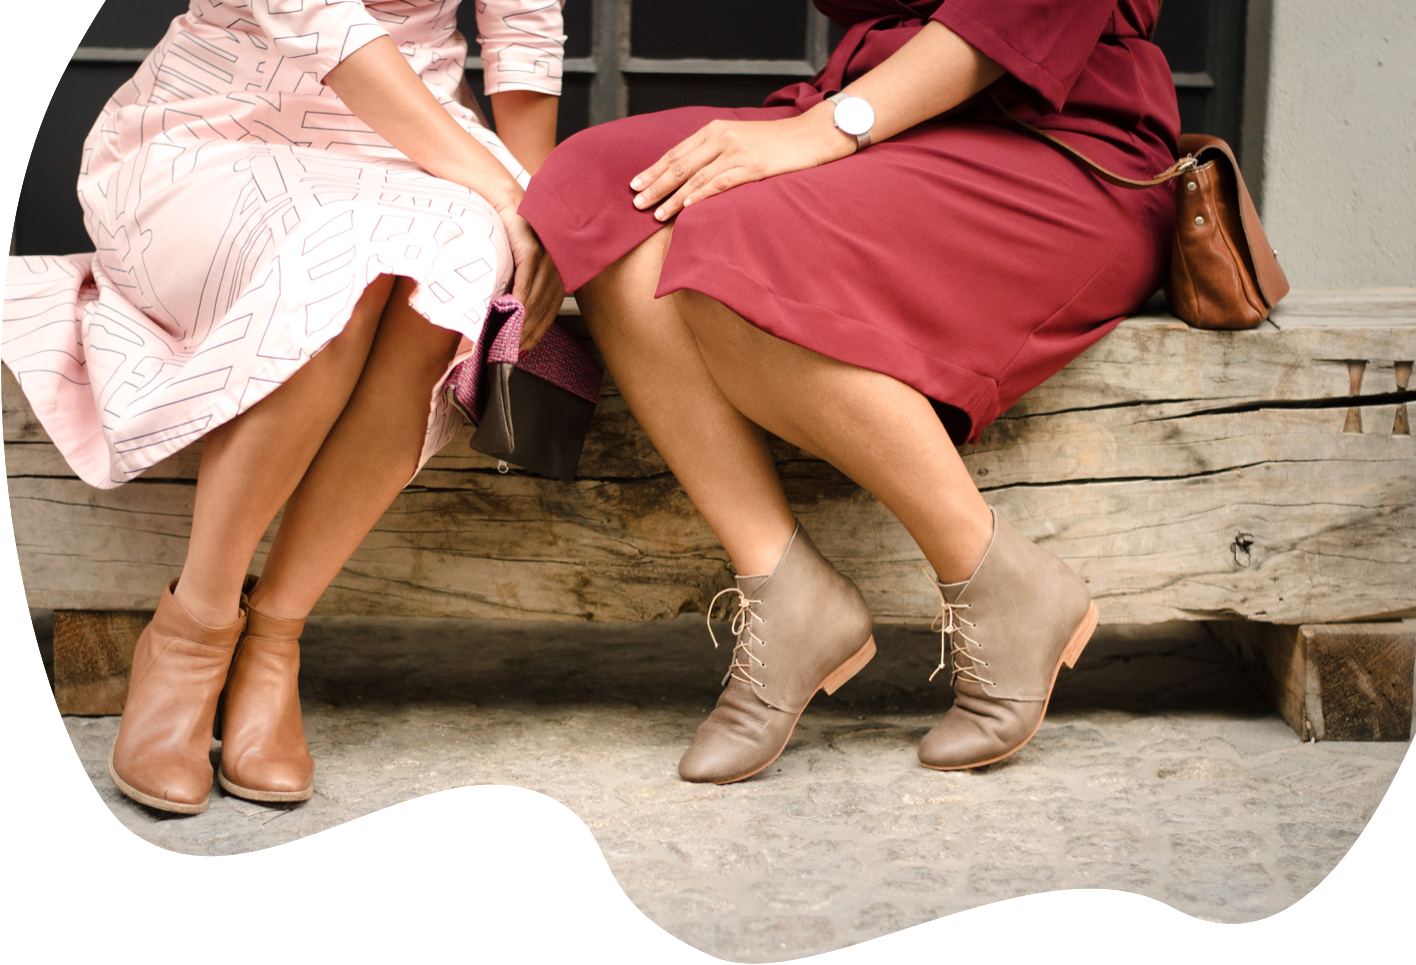 Waist down of two women sitting on wooden log touching knes wearing dresses